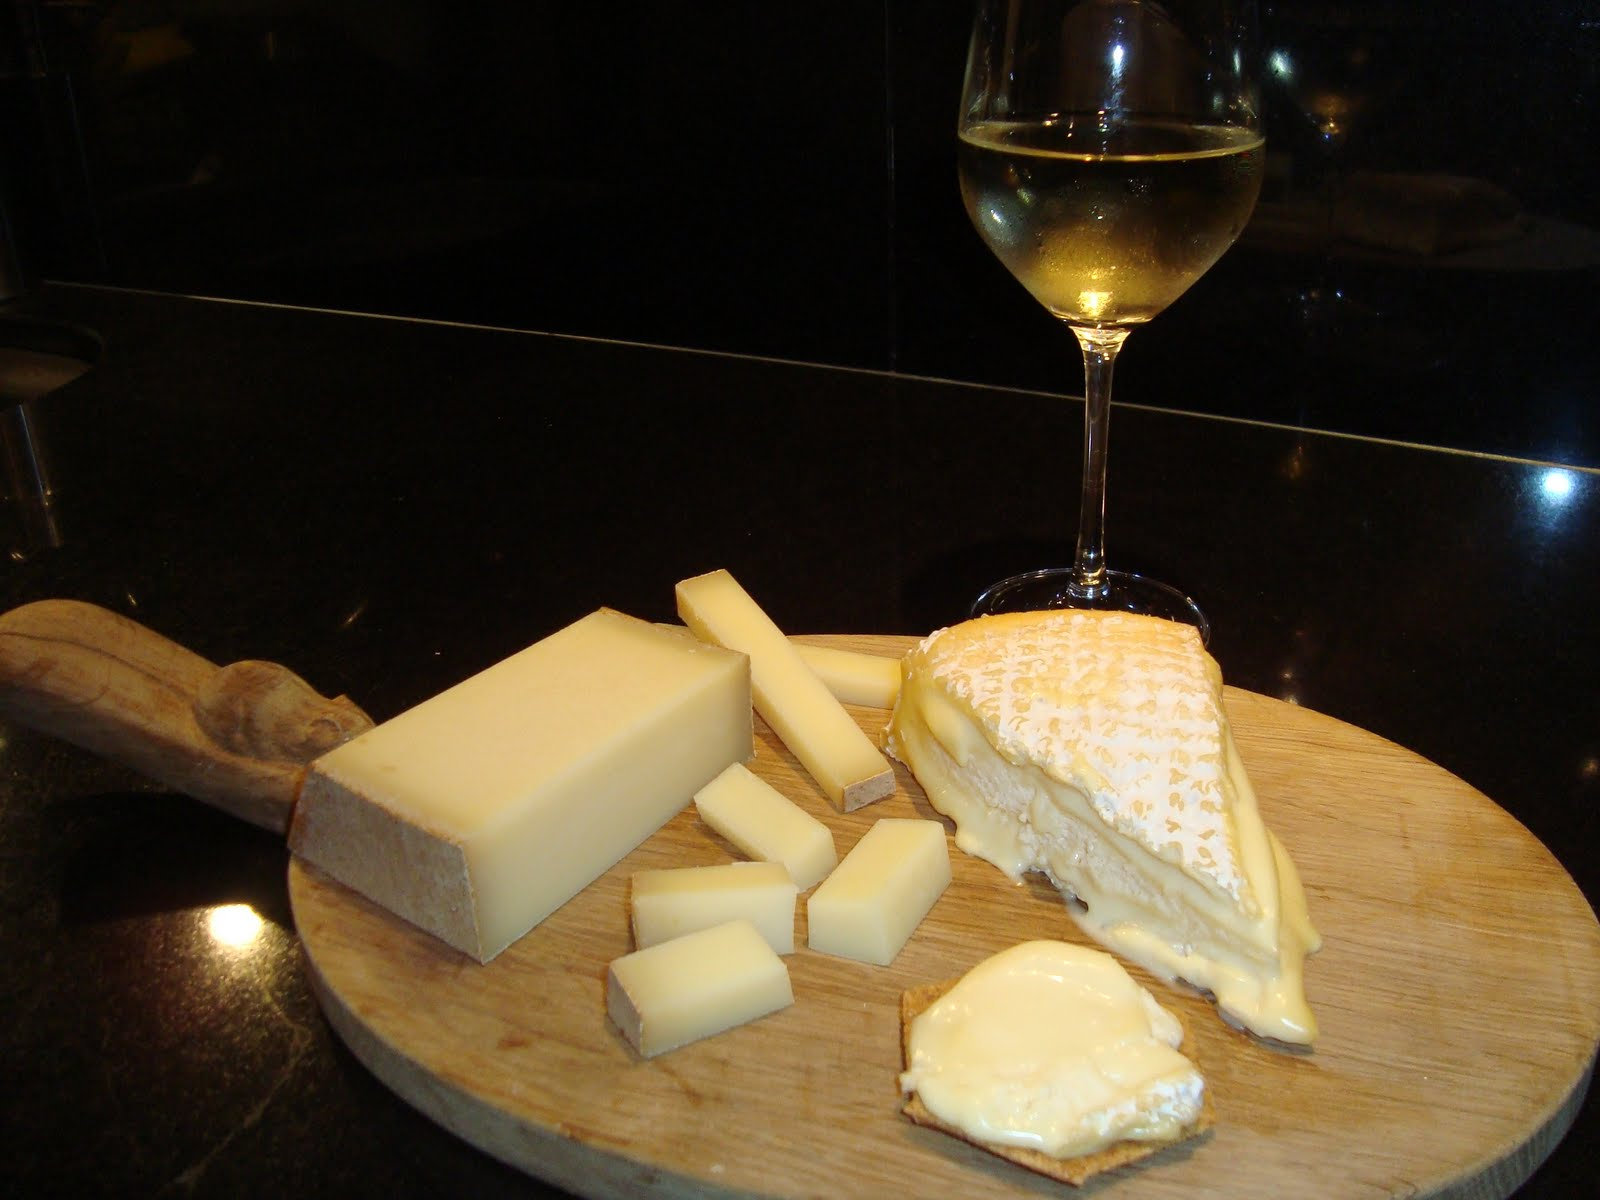 cheese-and-wine-9.jpg